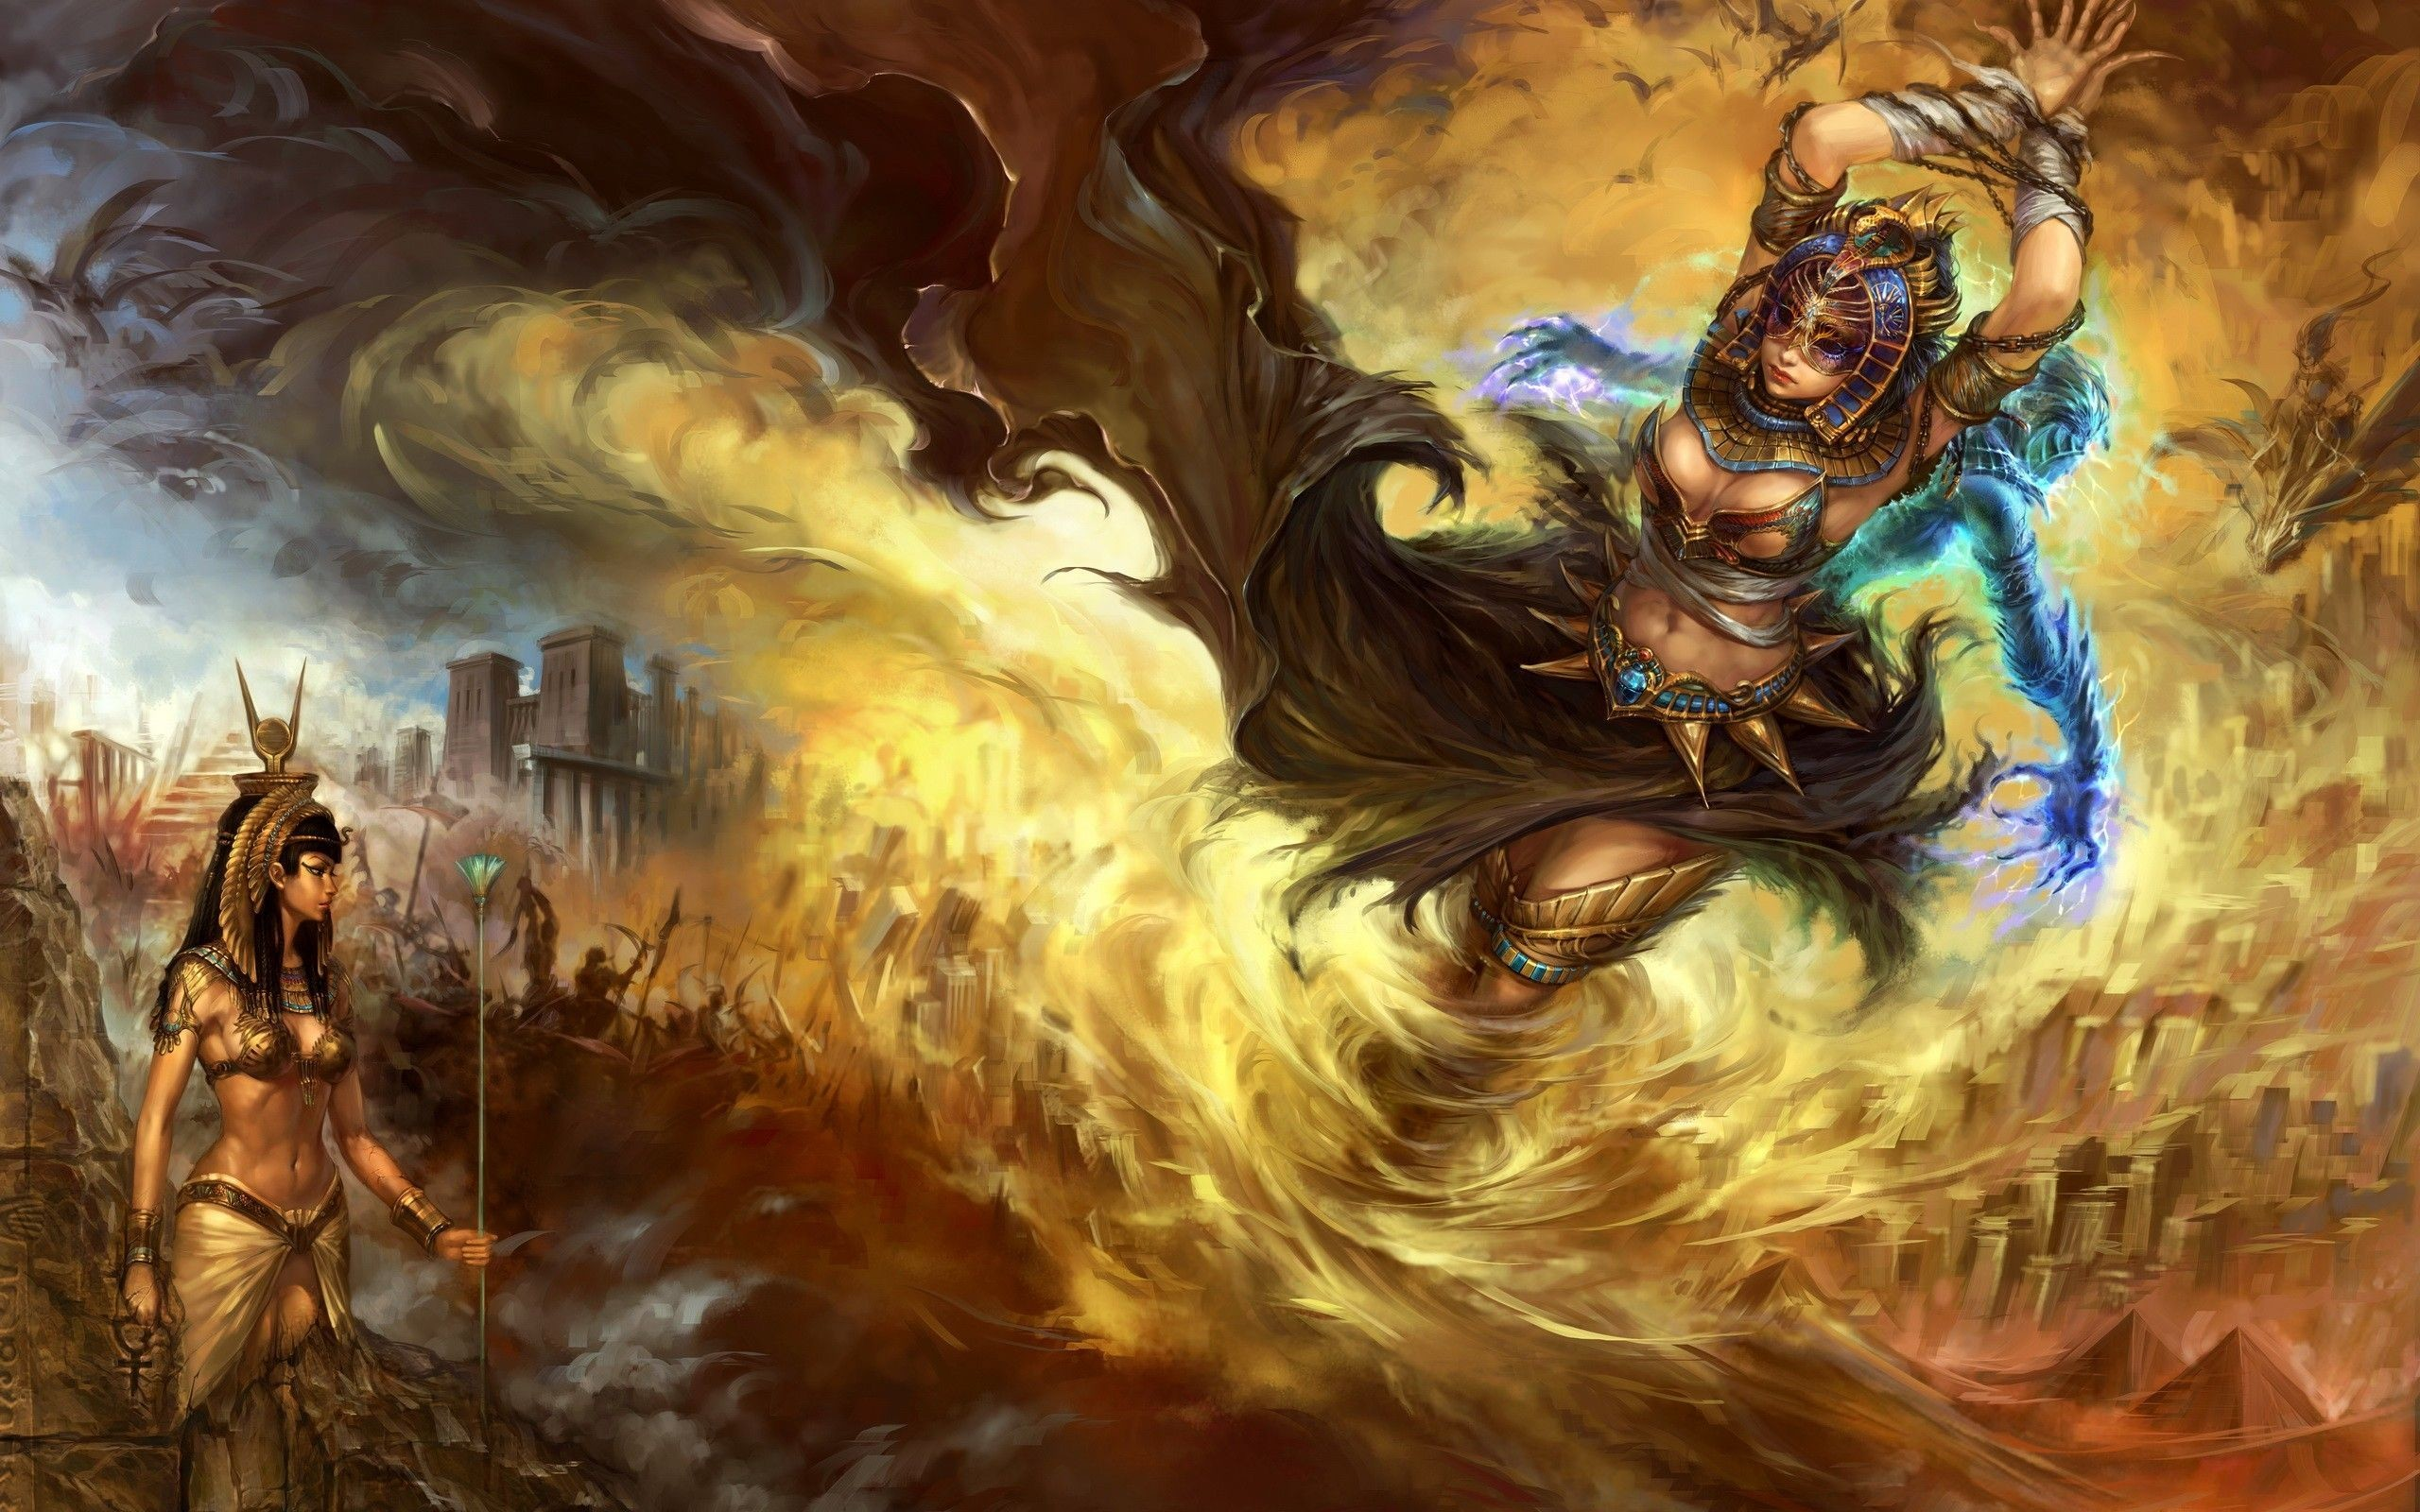 Gods Of Egypt Wallpapers, Widescreen Wallpapers of Gods Of Egypt .